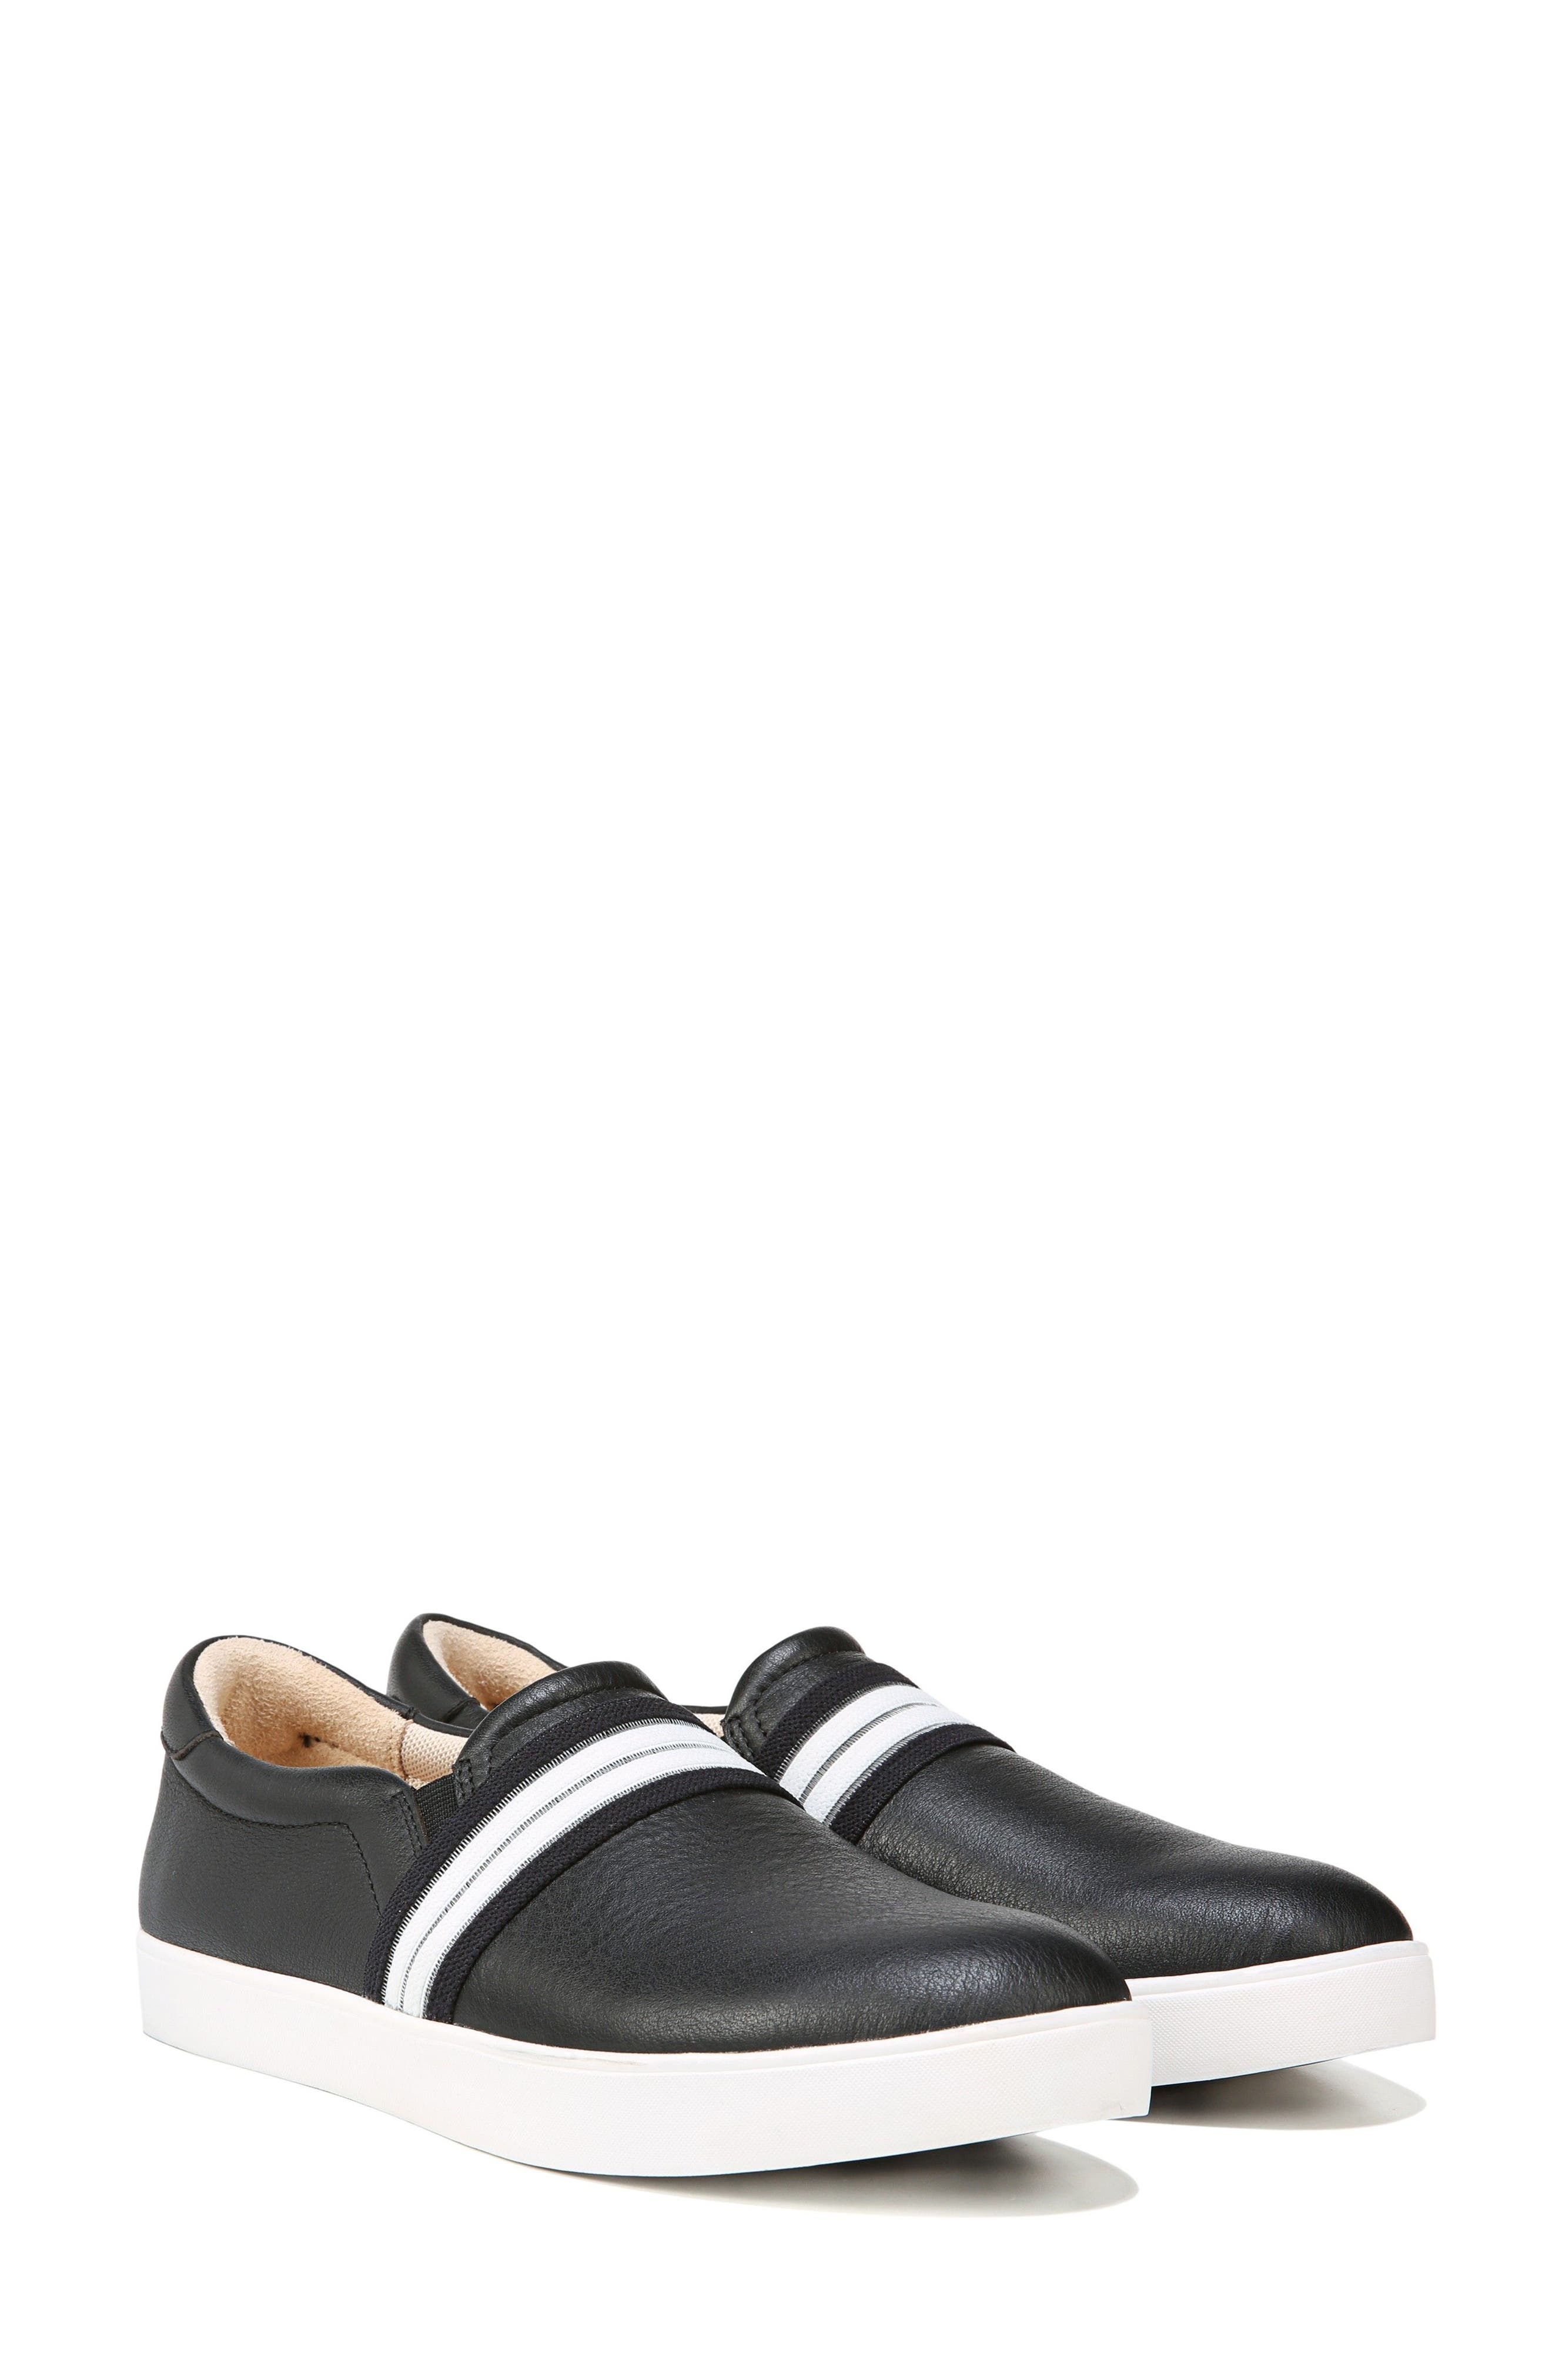 Scout Slip-On Sneaker,                             Alternate thumbnail 8, color,                             BLACK LEATHER 2